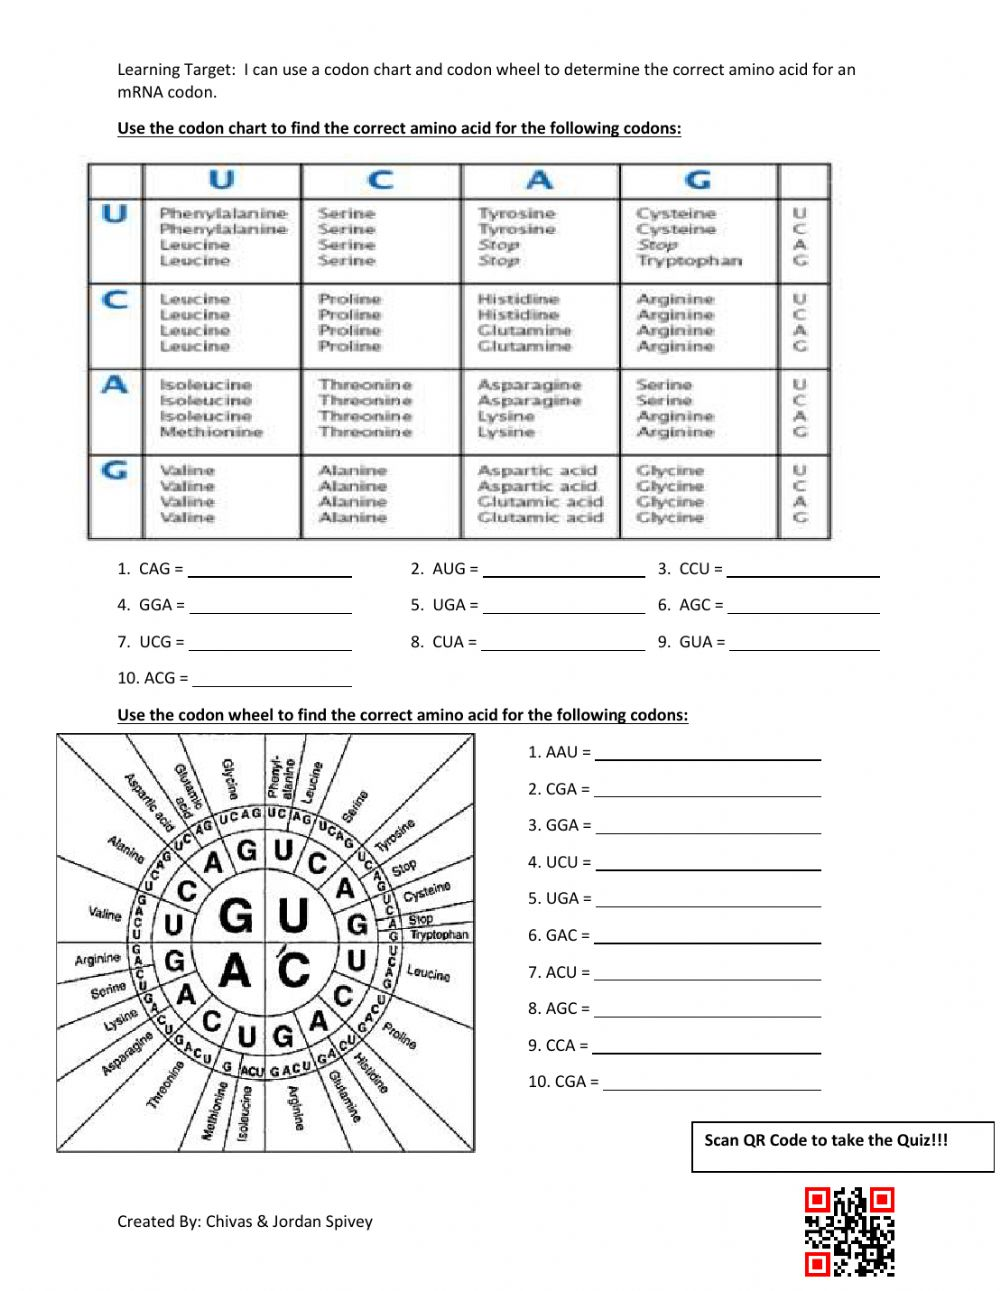 Codon Chart & Codon Wheel Interactive Activity worksheet